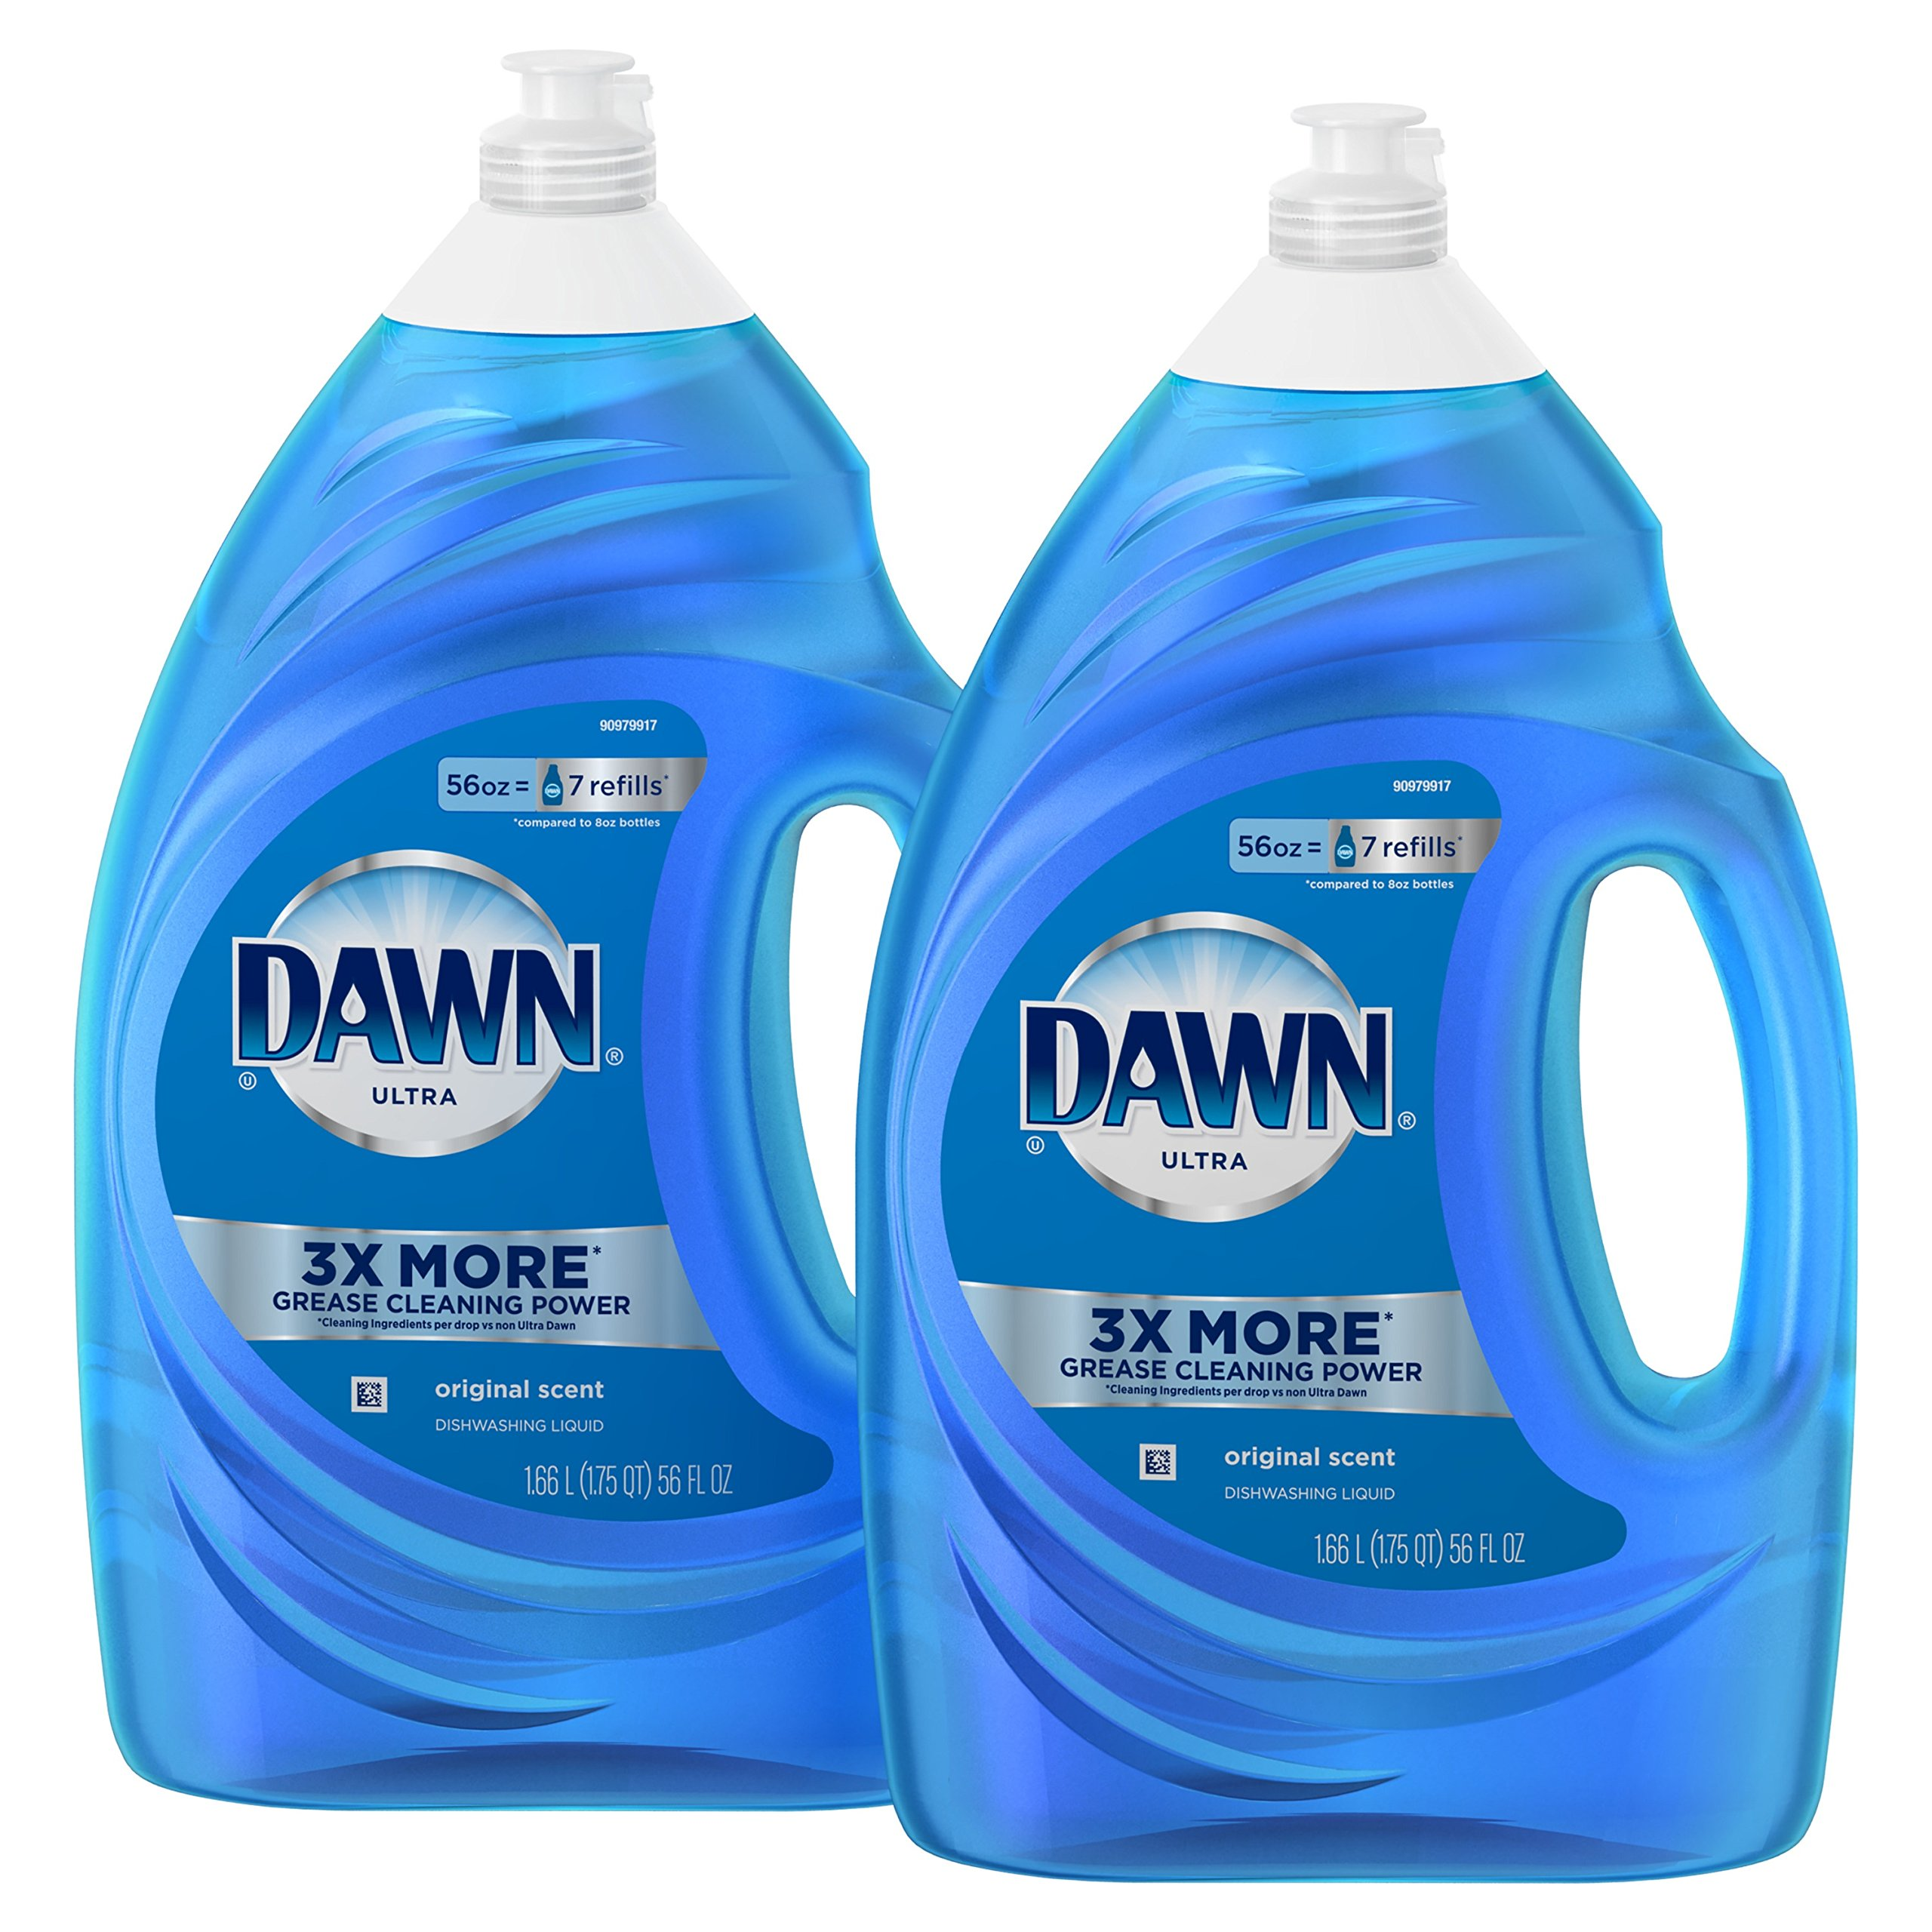 Is dawn dish soap toxic to cats